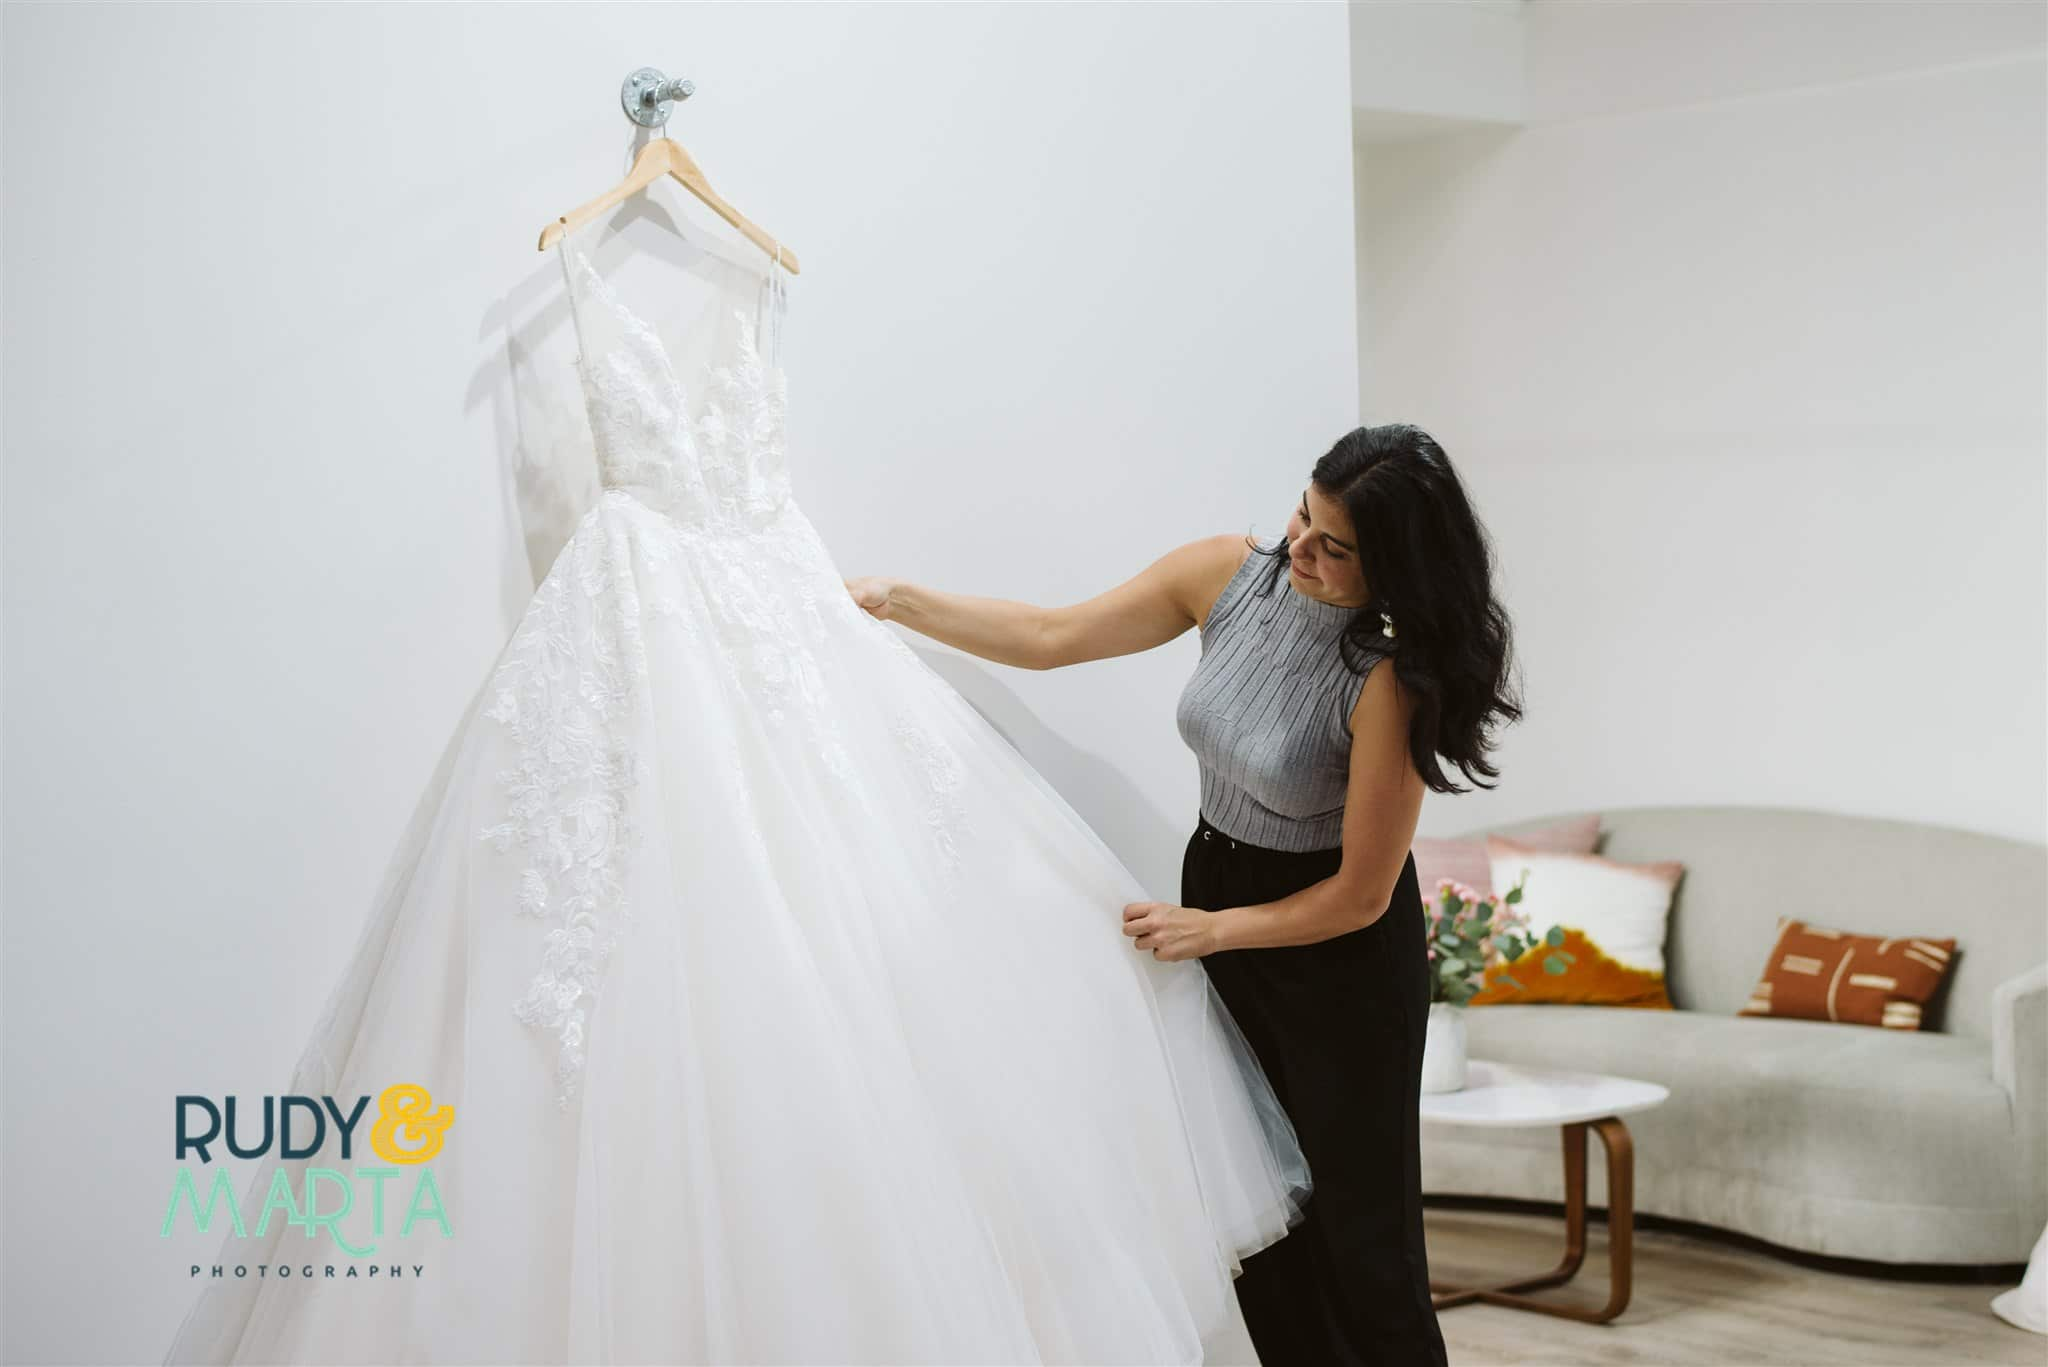 bridal gown stylist at the bridal finery helping with bridal appointments in winter park florida